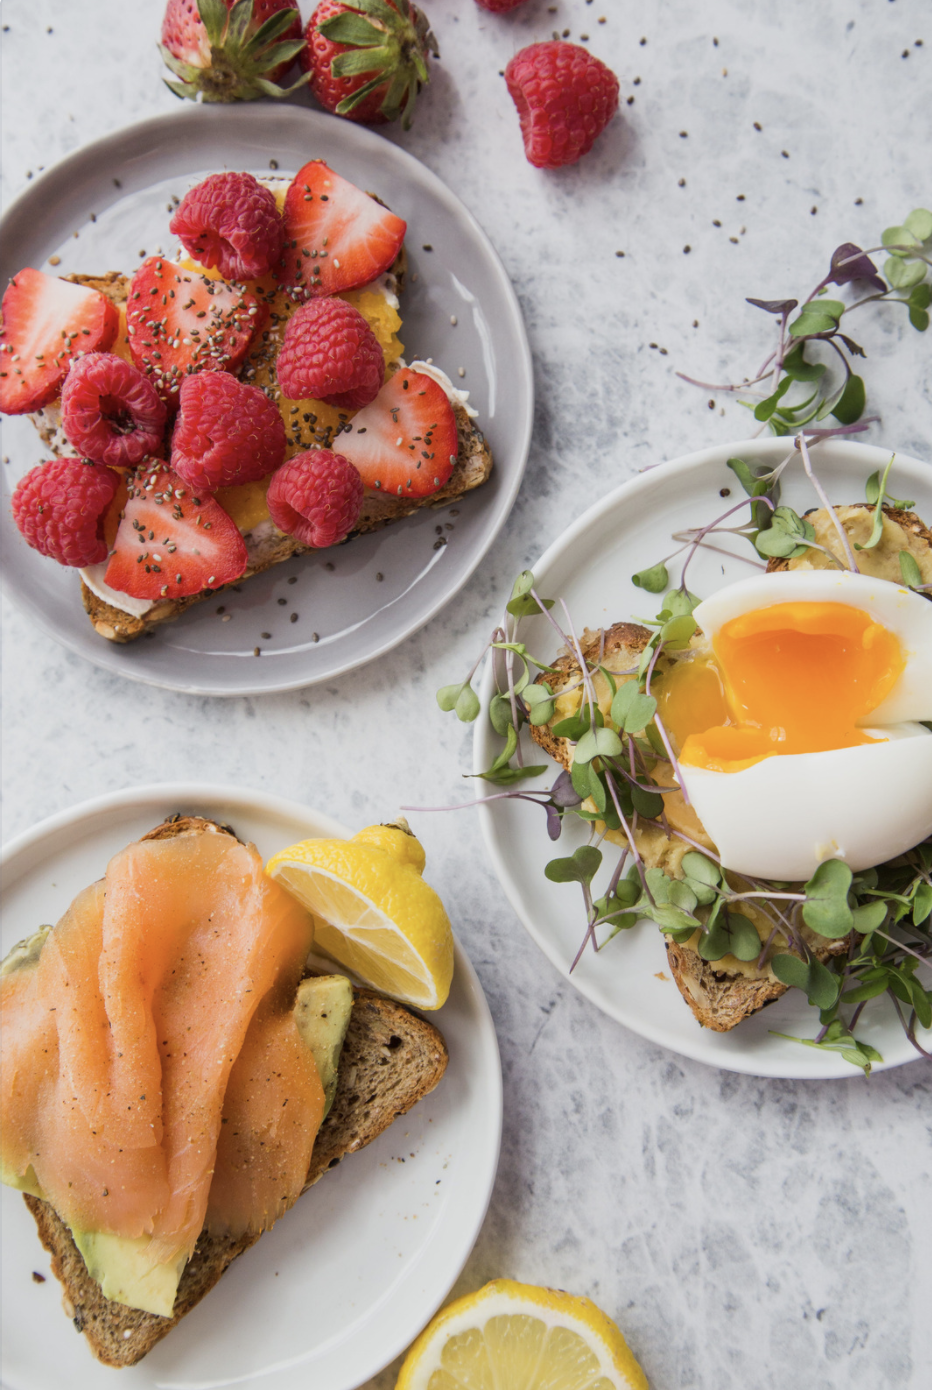 5 Signs You're Not Getting All of The Nutrition You Need